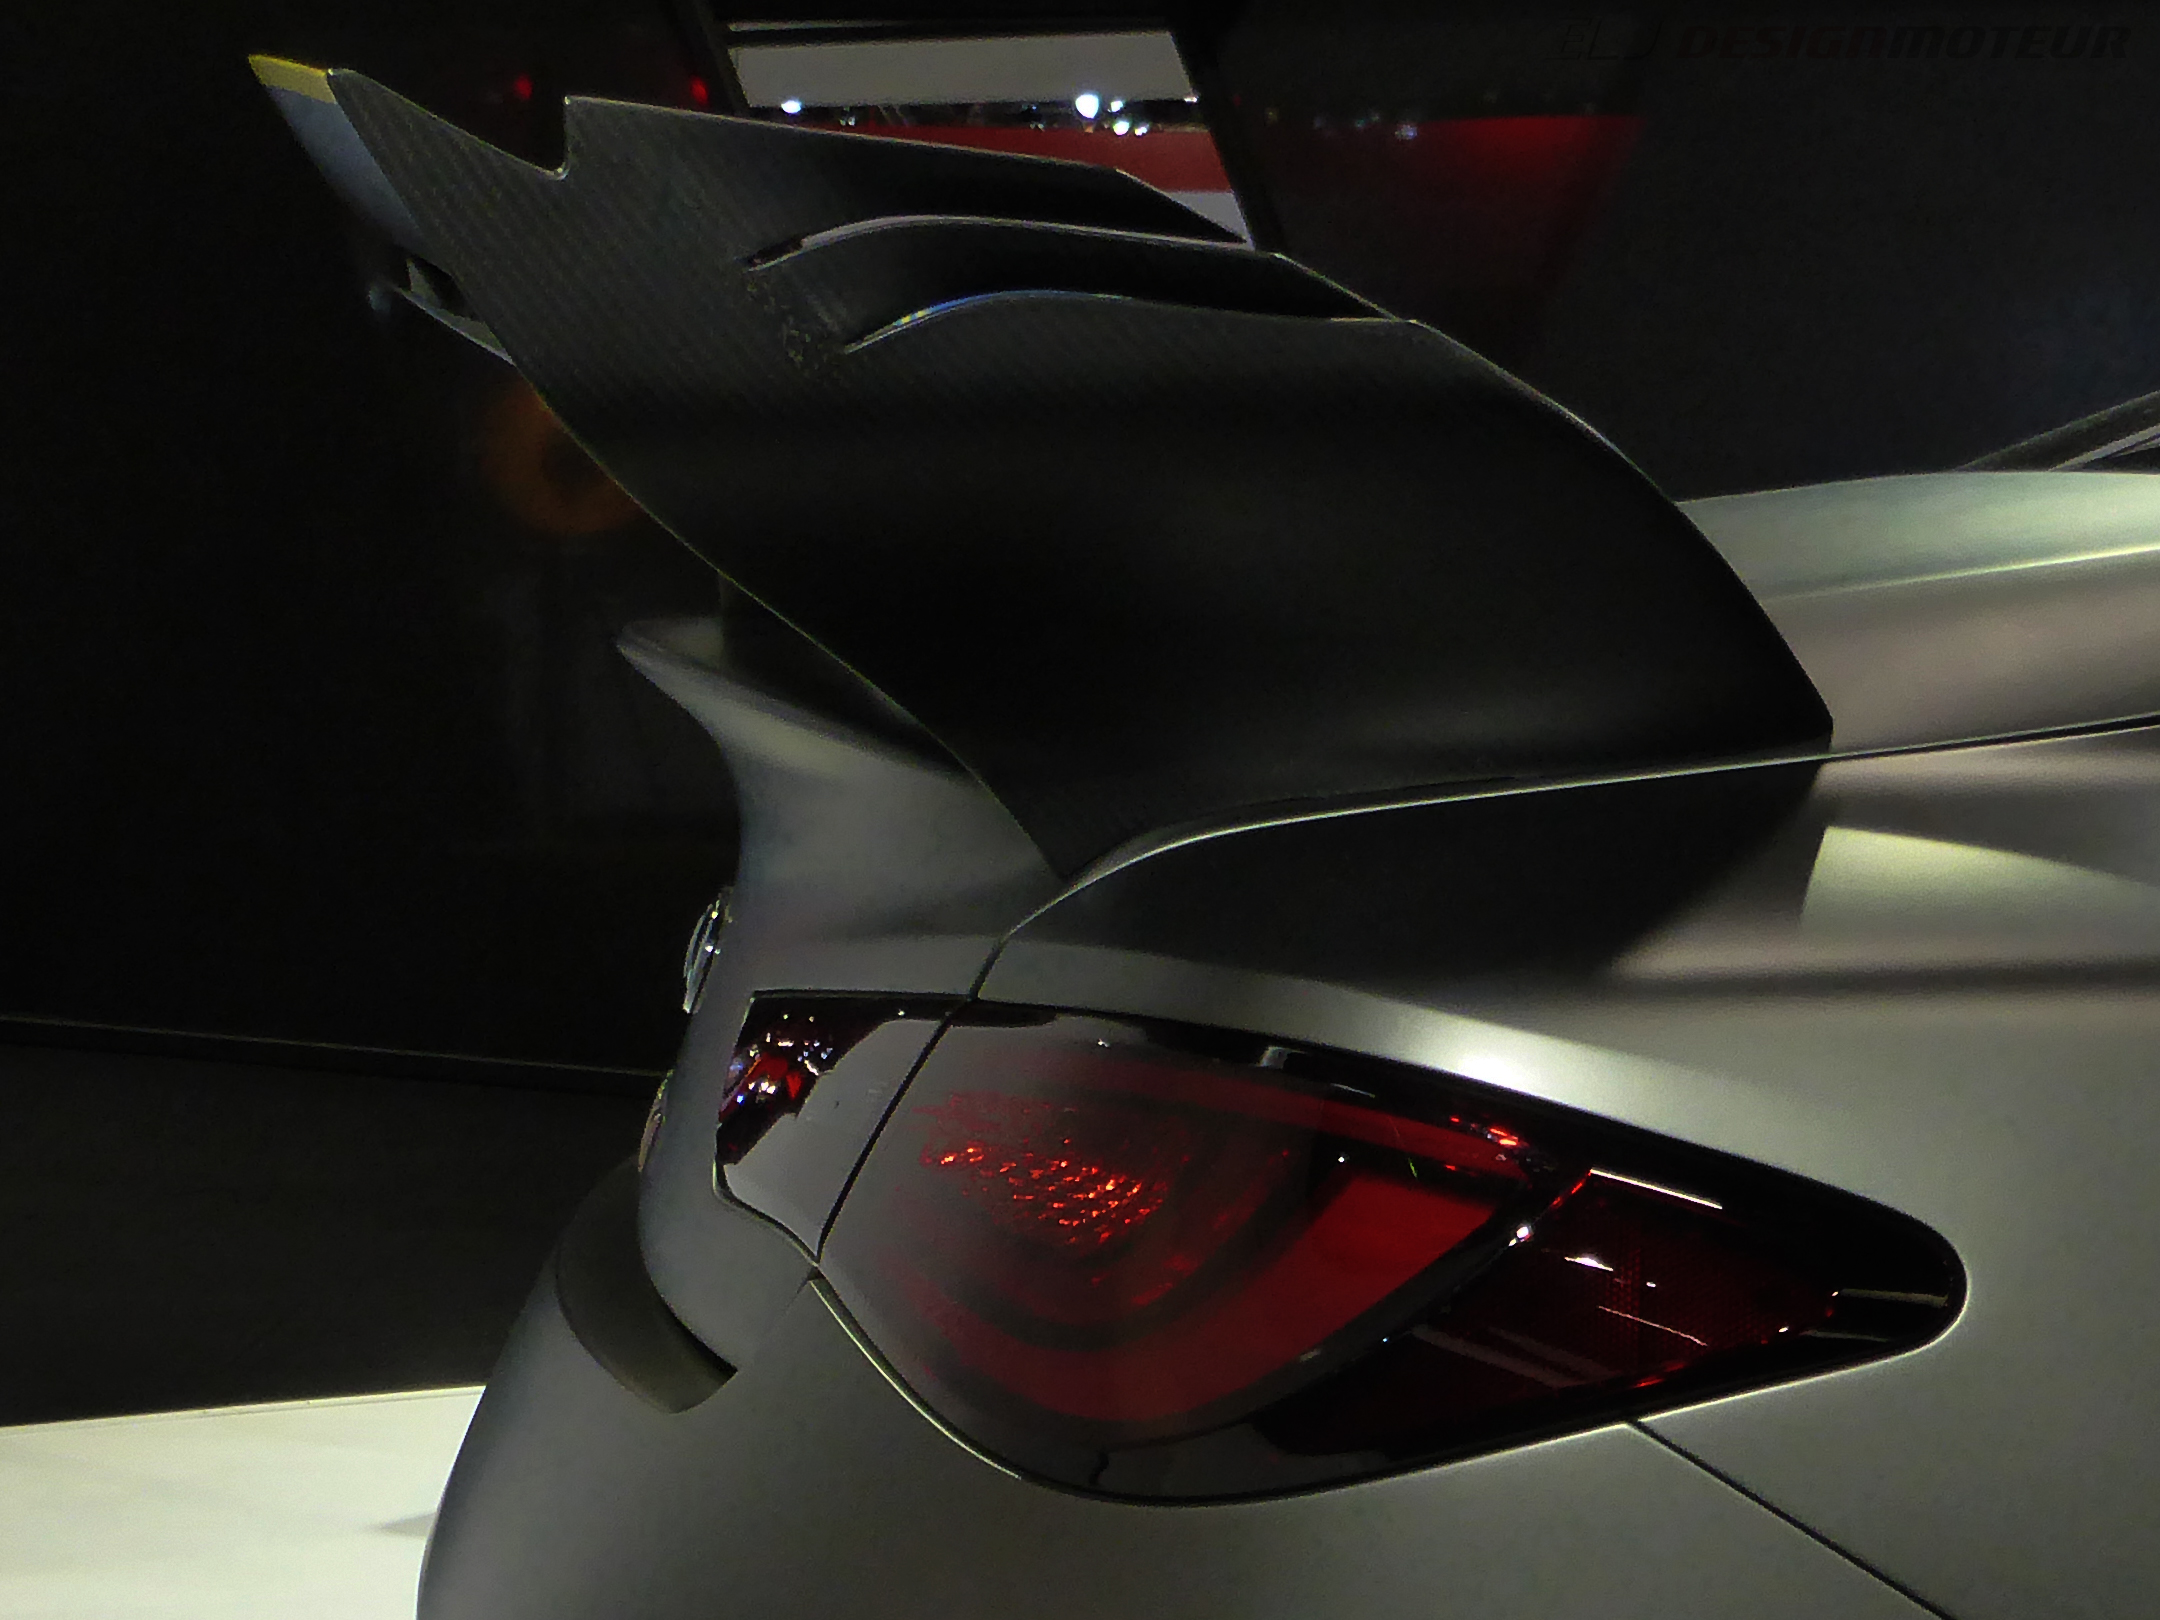 Infiniti Project Black S - aero rear wing - Paris Motor Show - 2018 - Mondial Auto - photo ELJ DESIGNMOTEUR